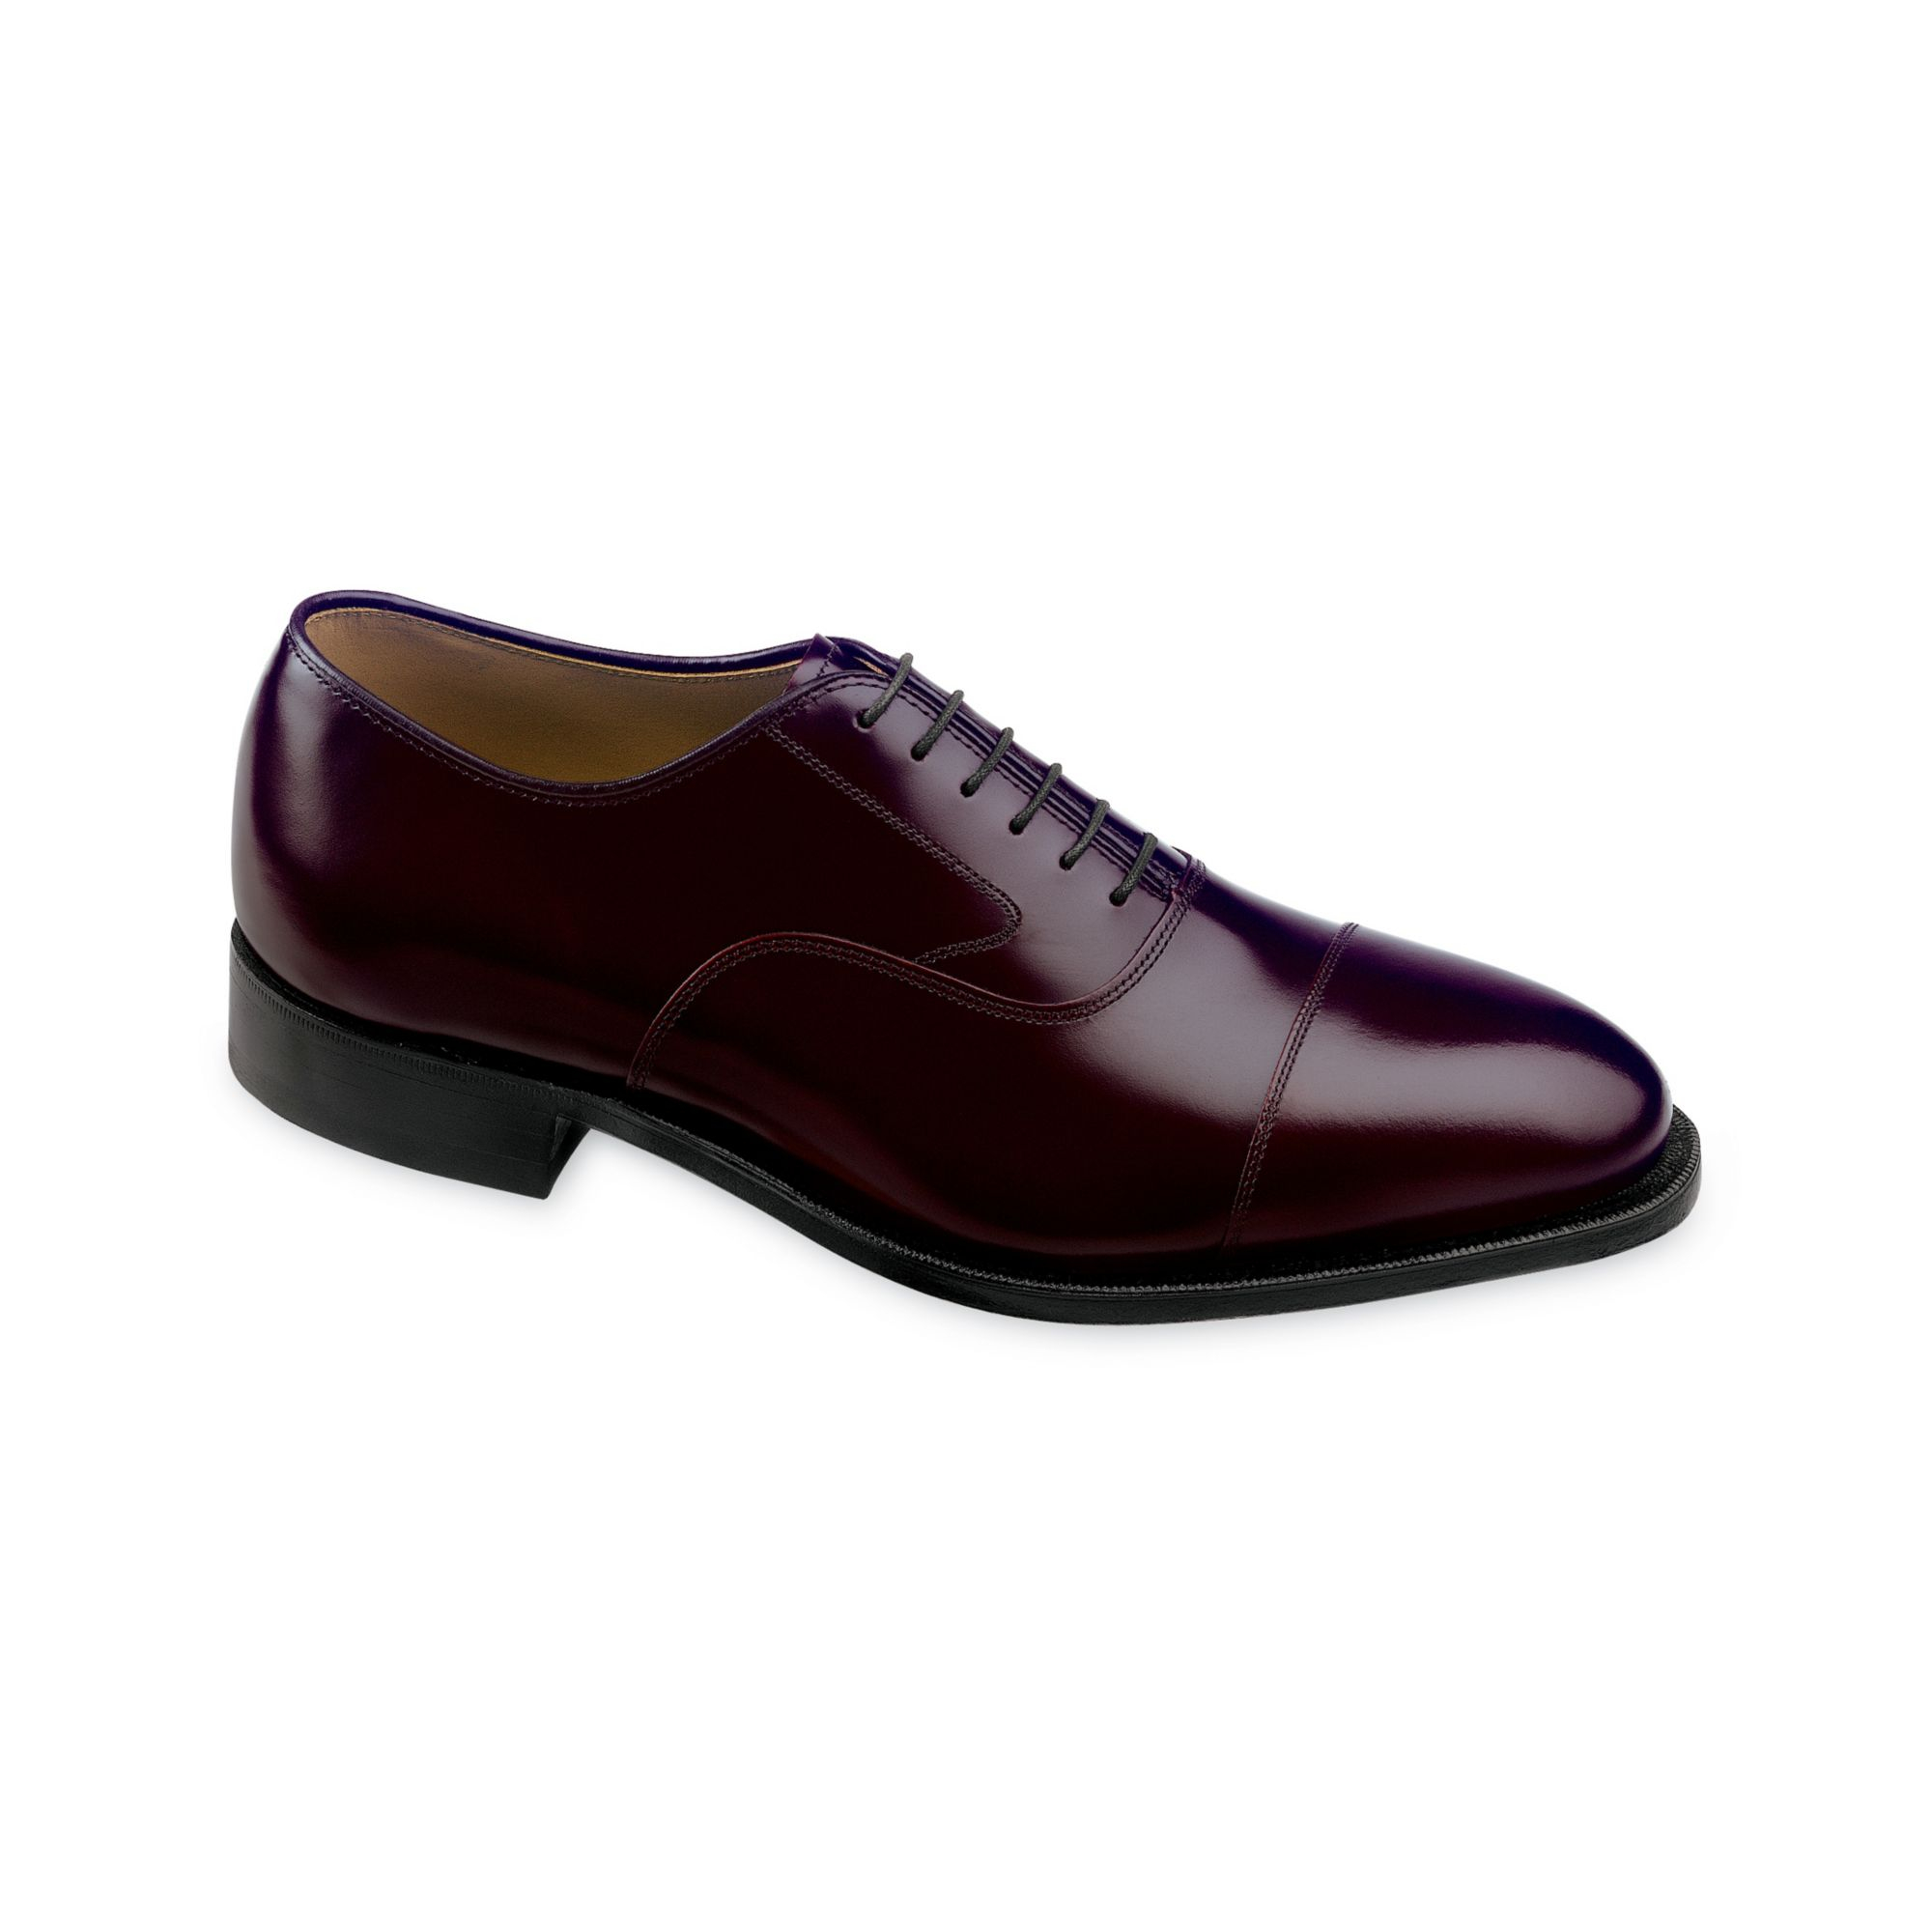 Dress Shoes With A Goodyear Welt